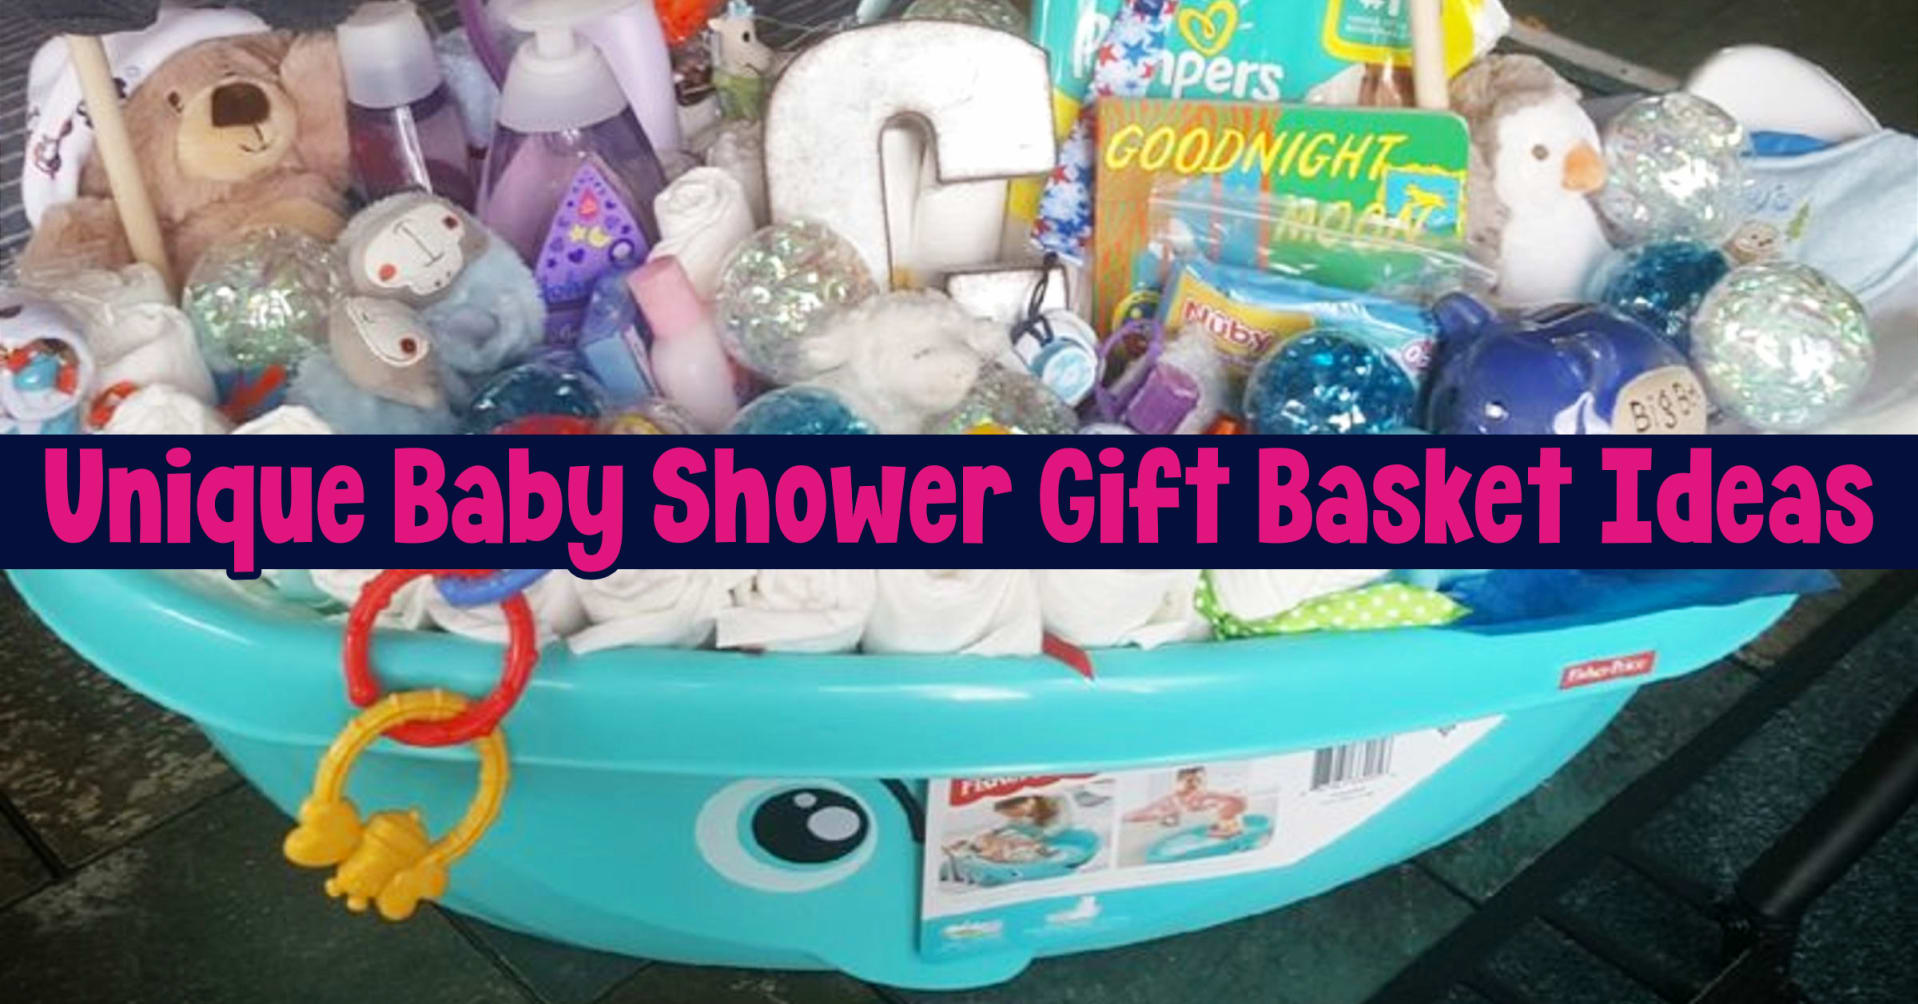 Baby Shower Gift Basket Ideas – Creative DIY Baby Shower Gift Baskets To Make If You're On a Budget